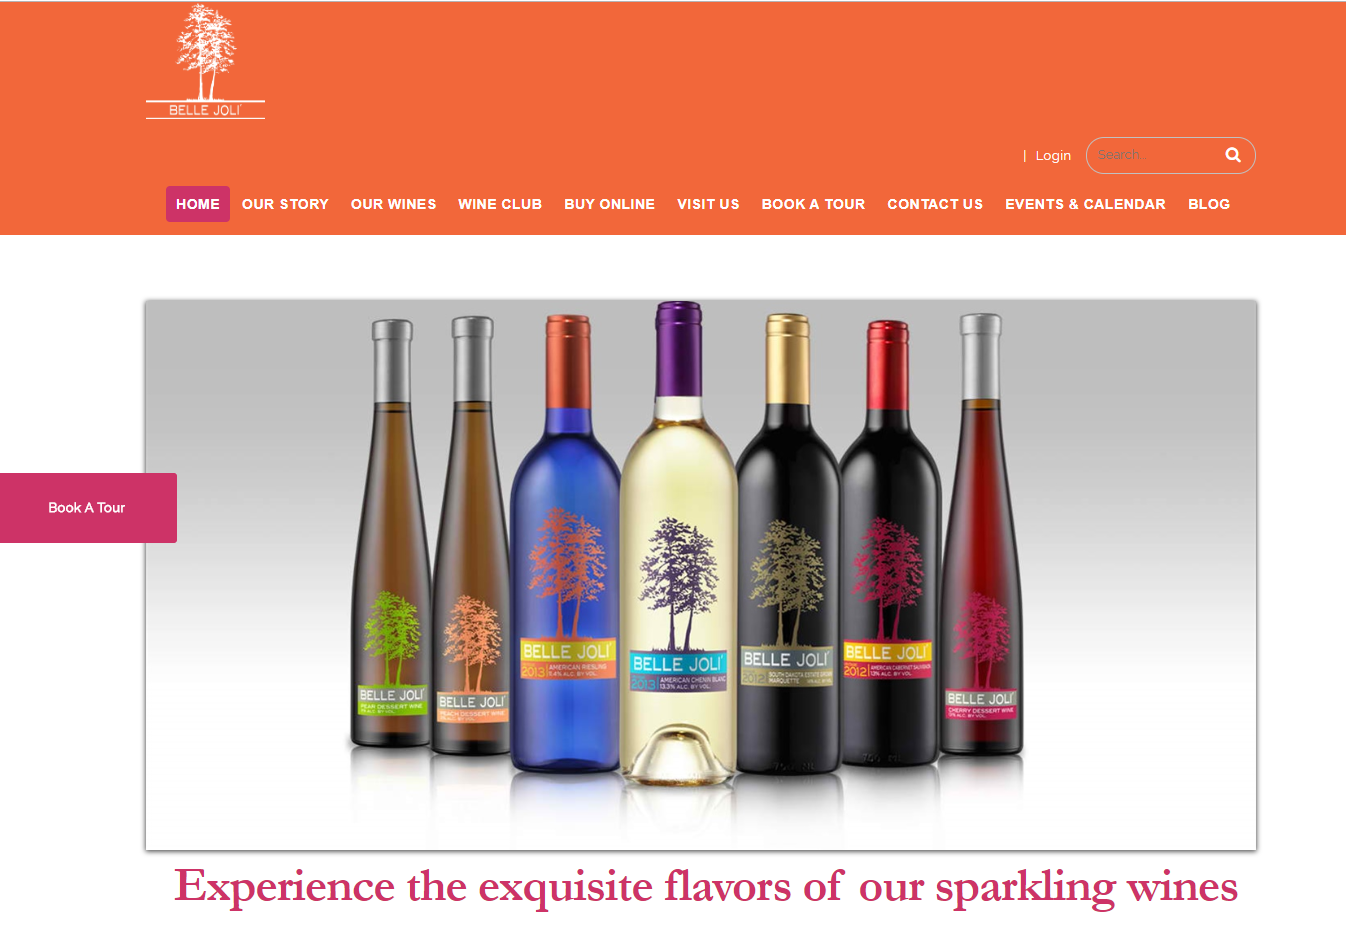 Belle Joli wine website